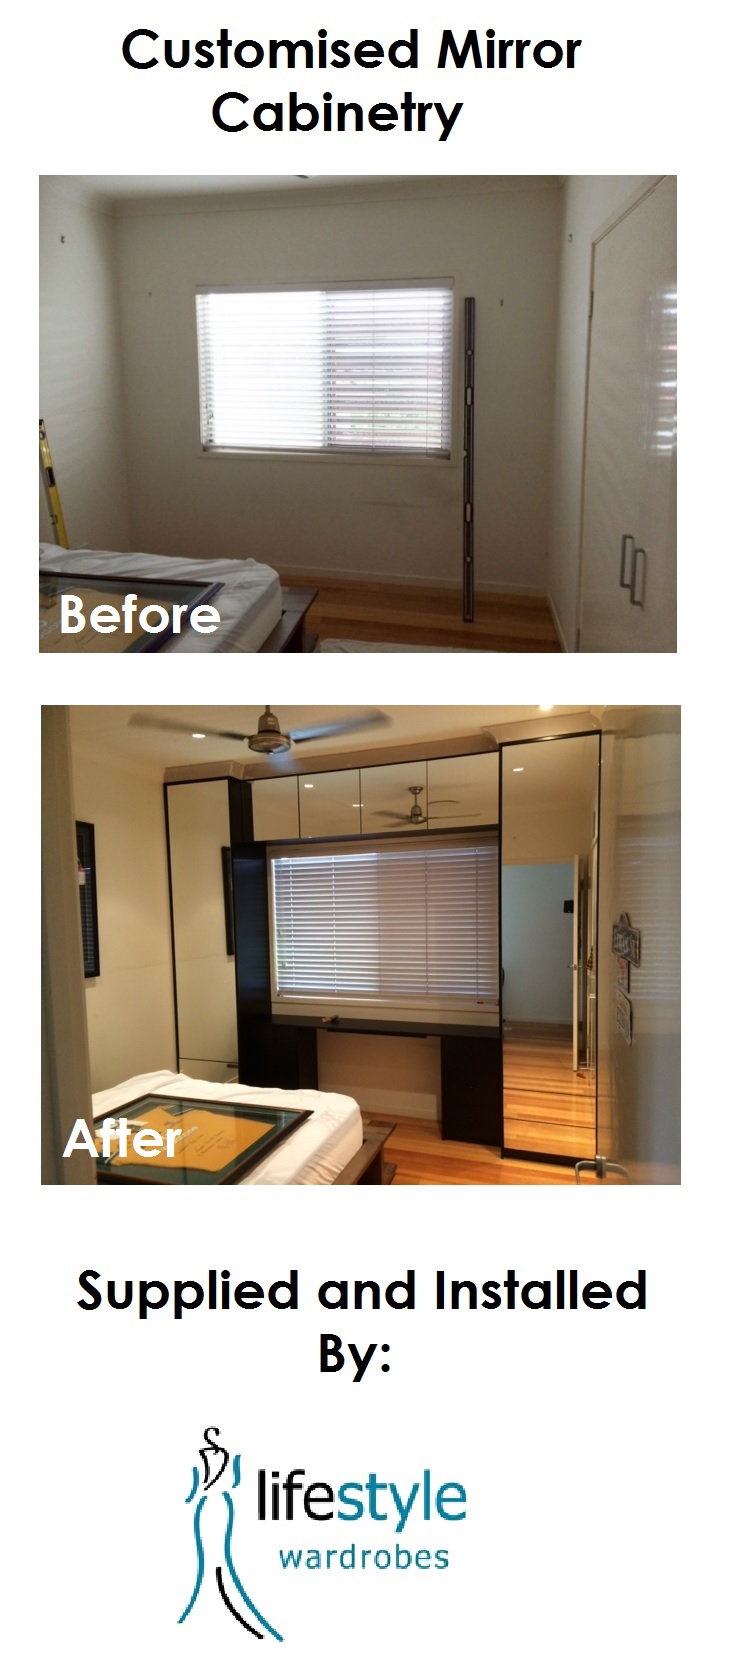 Kitchen space before and after image